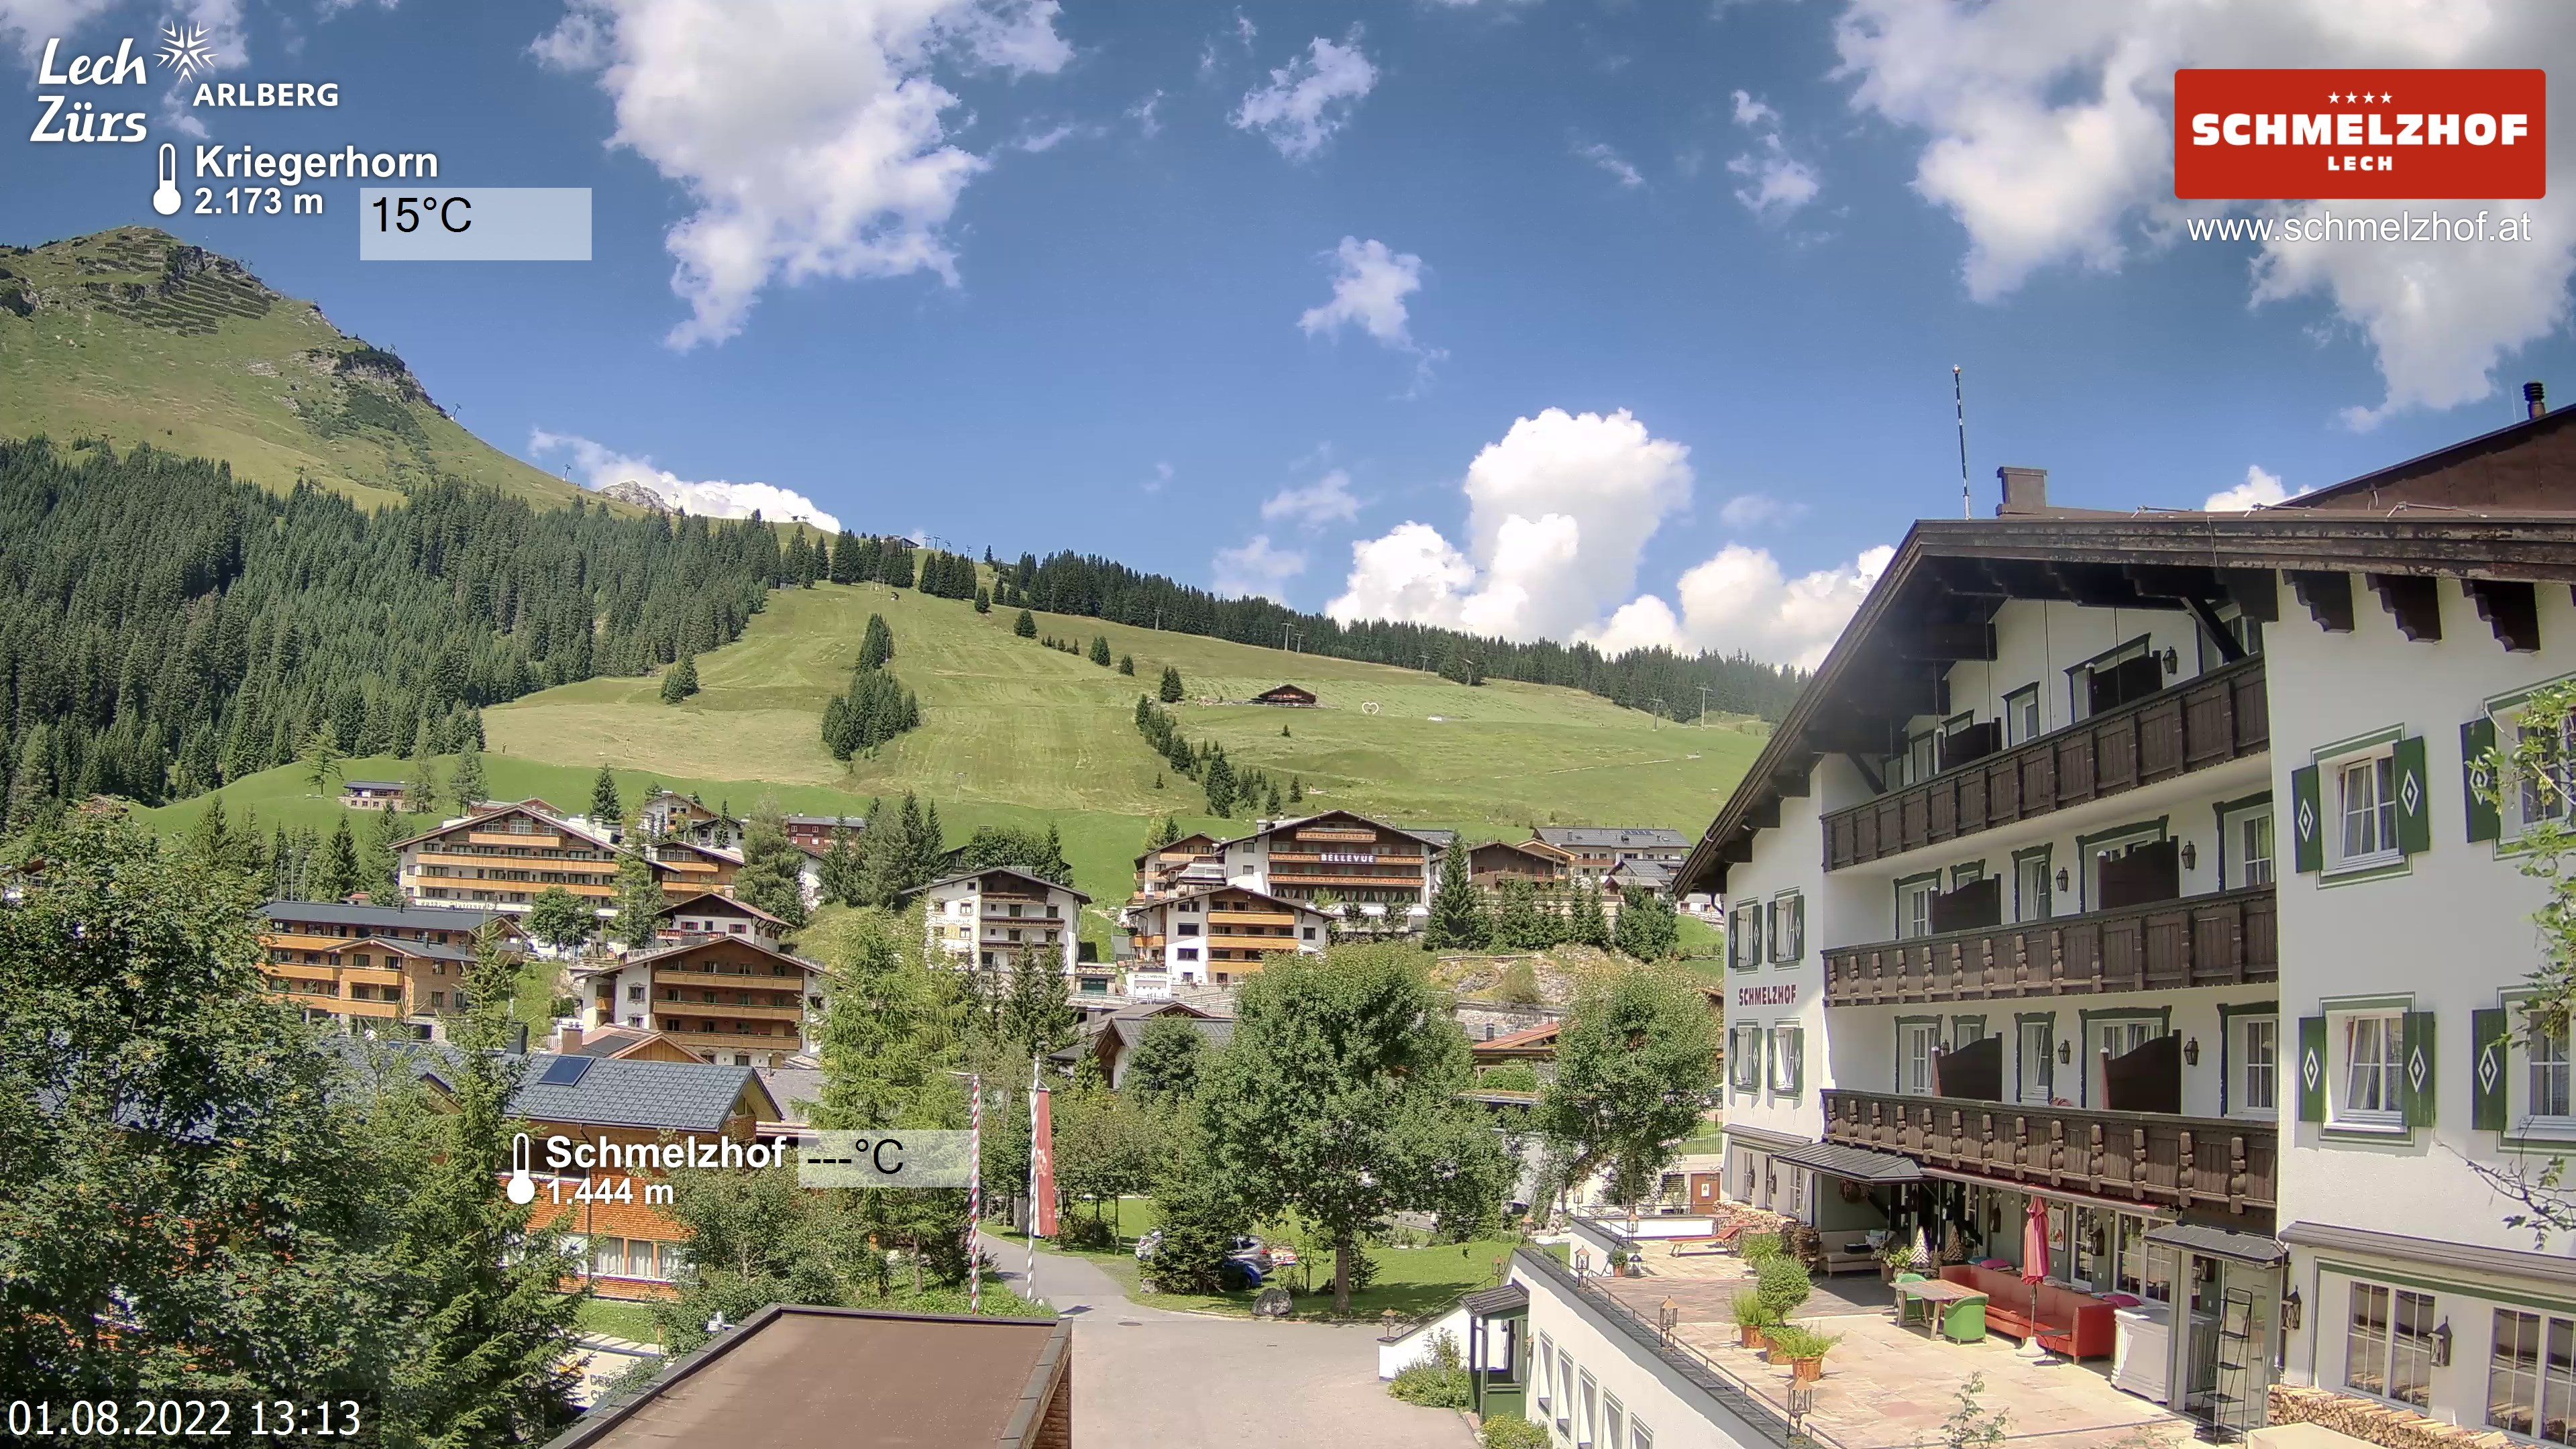 Webcam Lech am Arlberg - Hotel Schmmelzhof